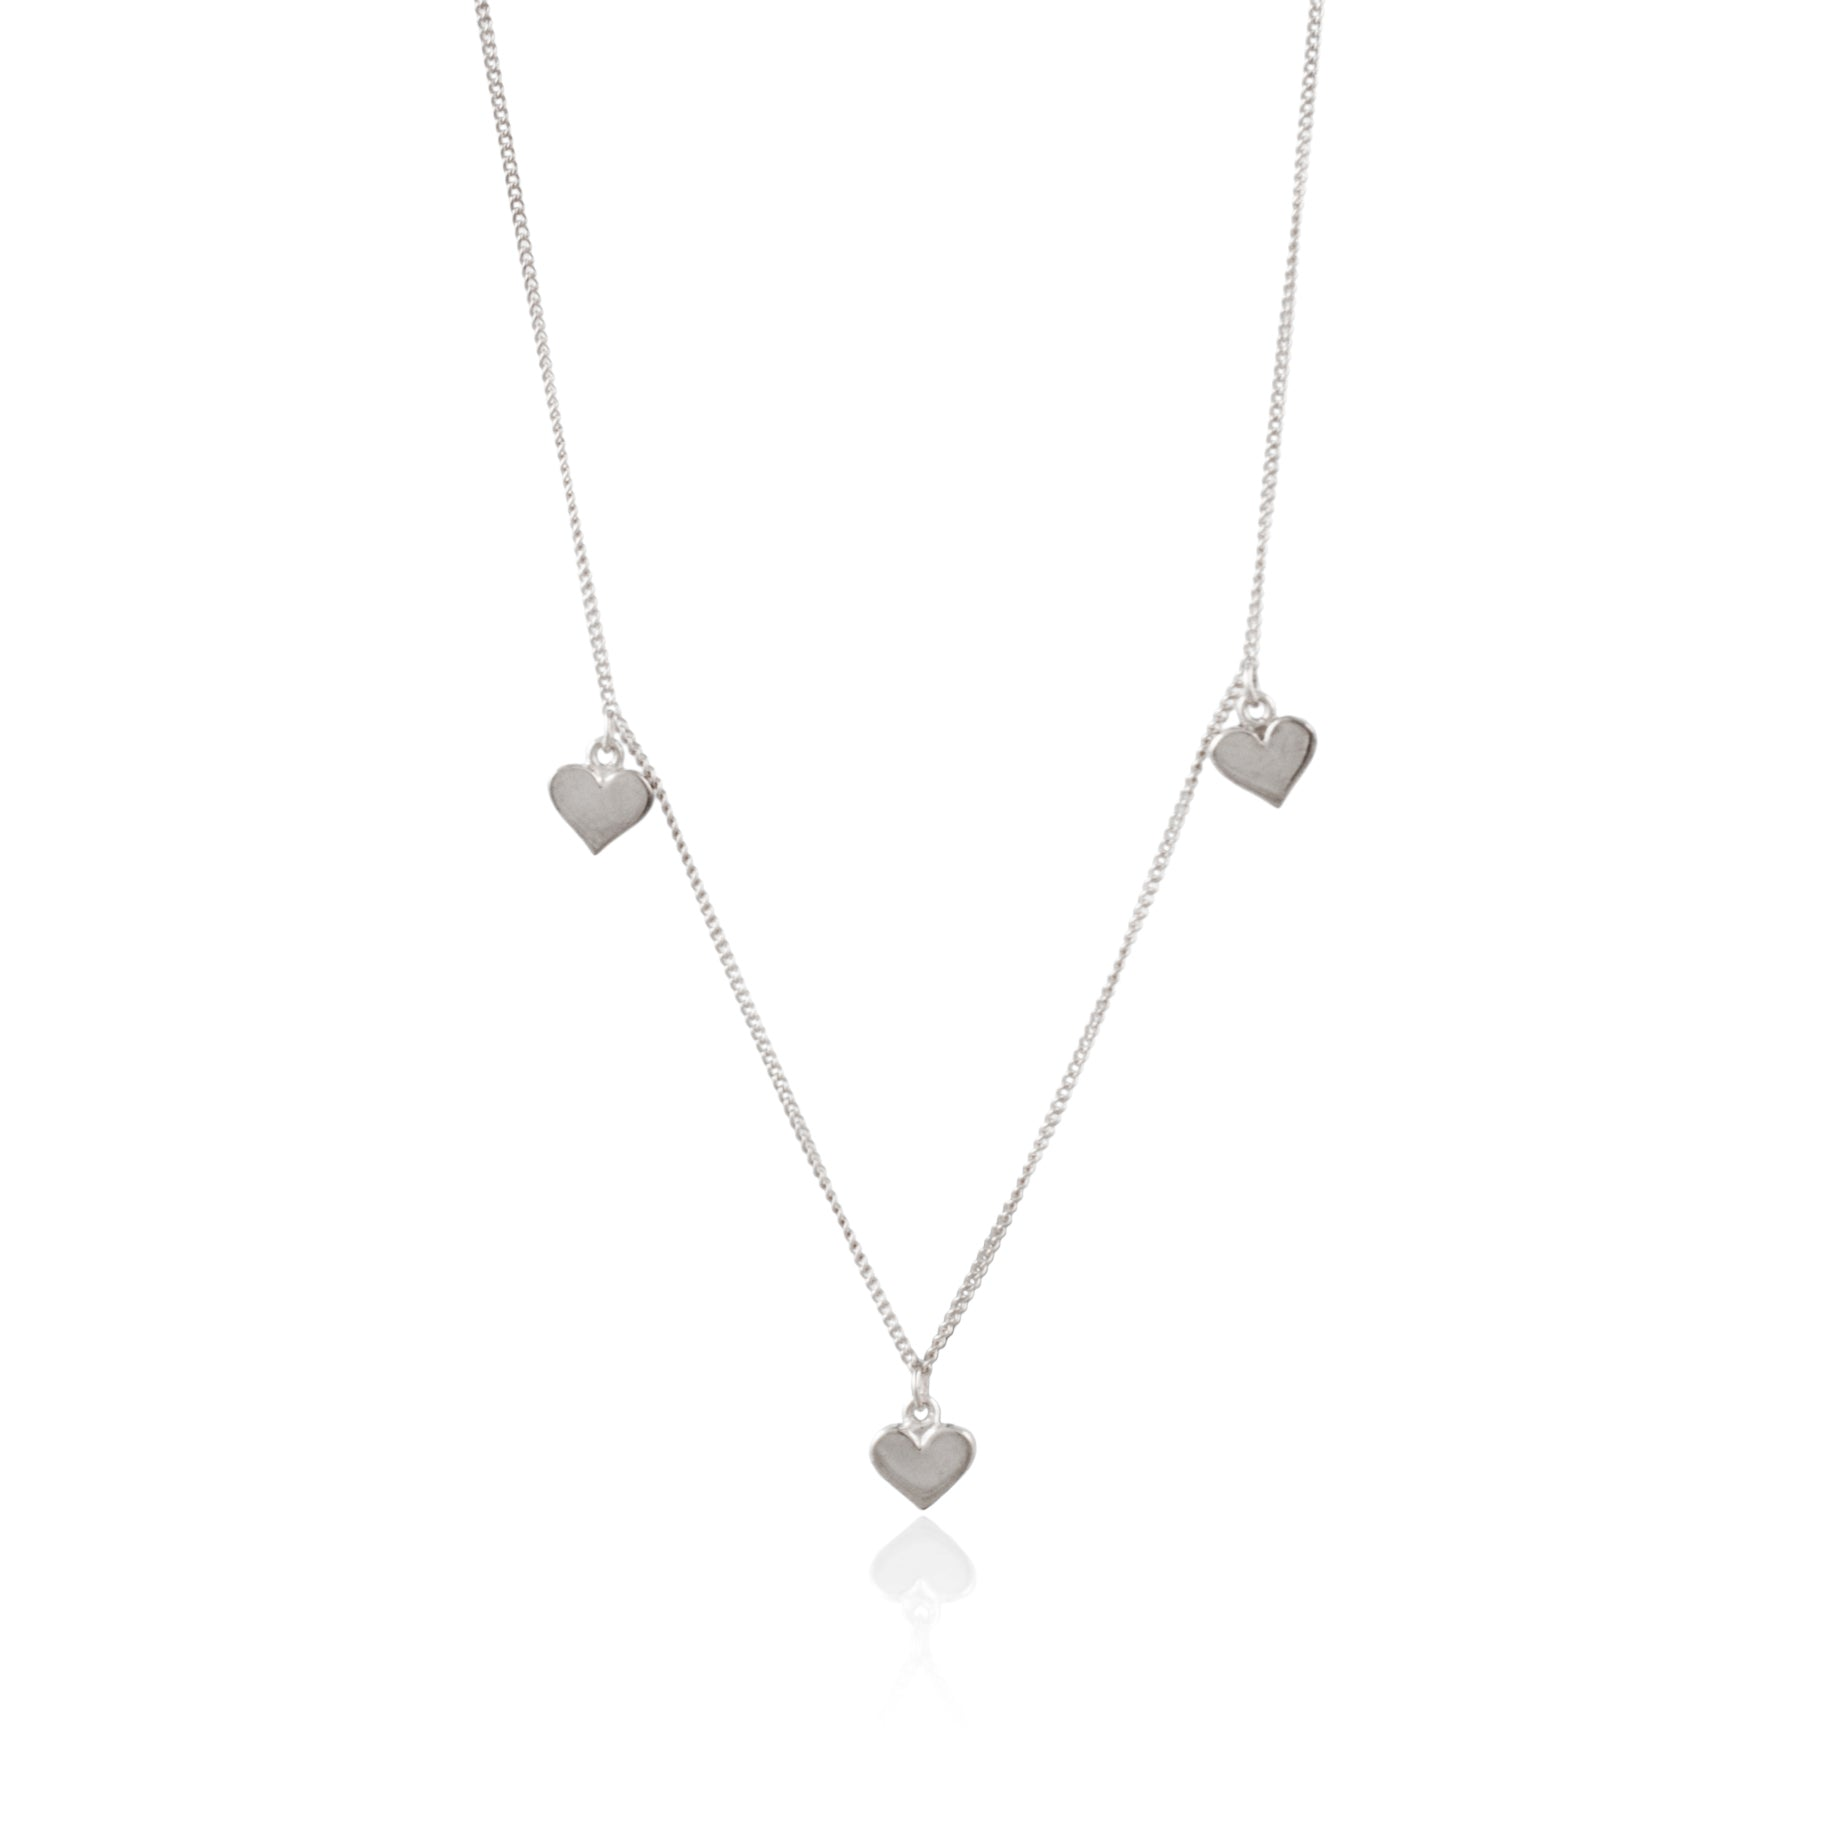 Trio of Hearts Necklace Heart of Gold in Solid Silver